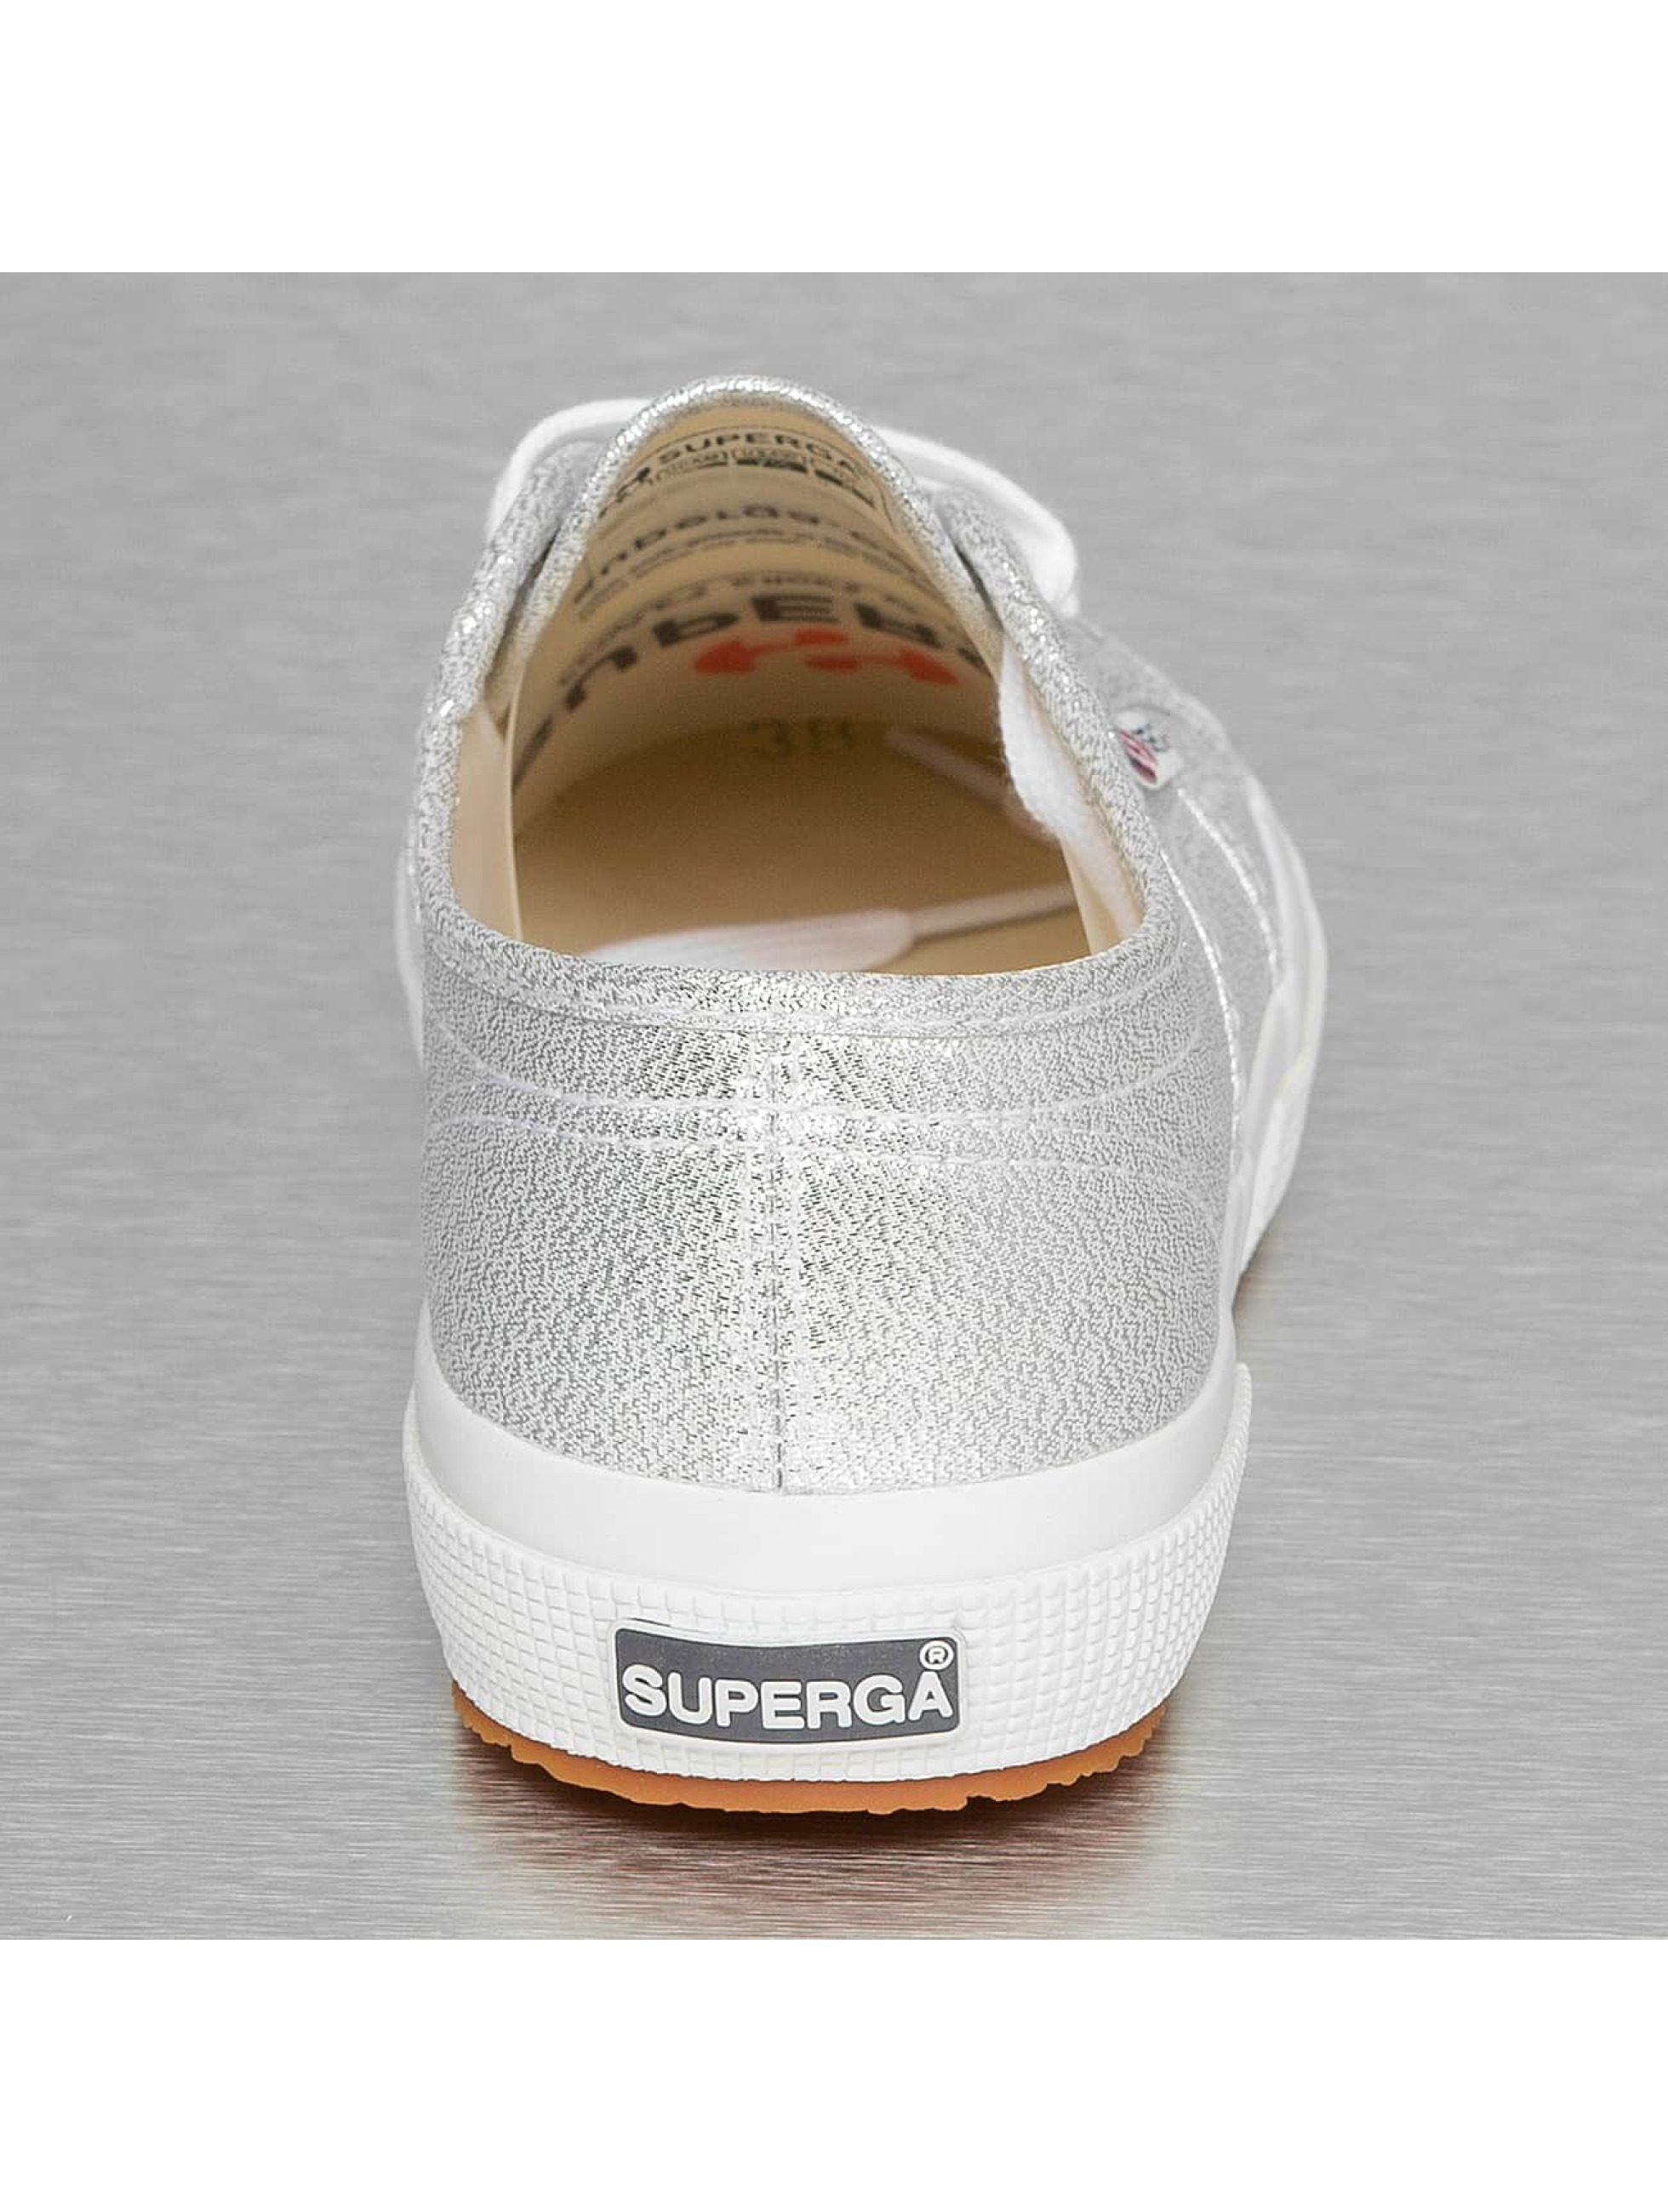 Superga Sneakers 2750 Lamew silver colored